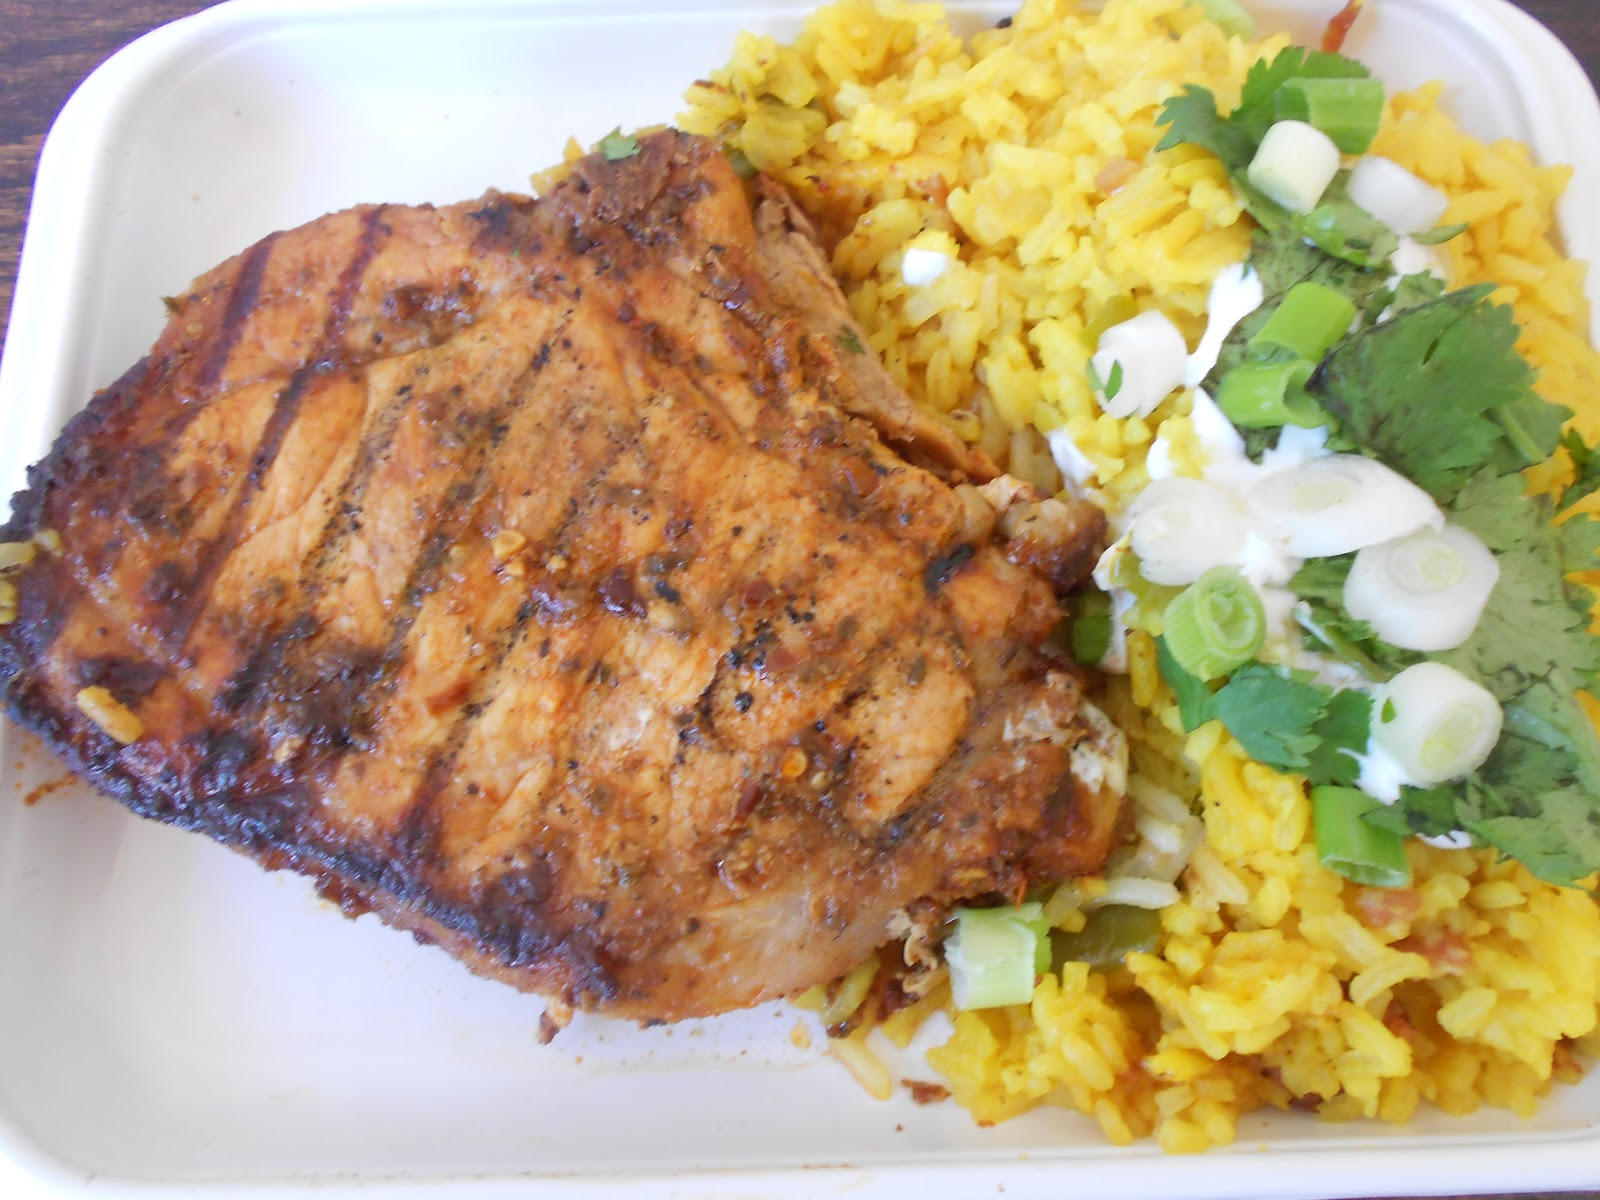 pork chops grilled pork chops with garlic lime sauce grilled pork ...